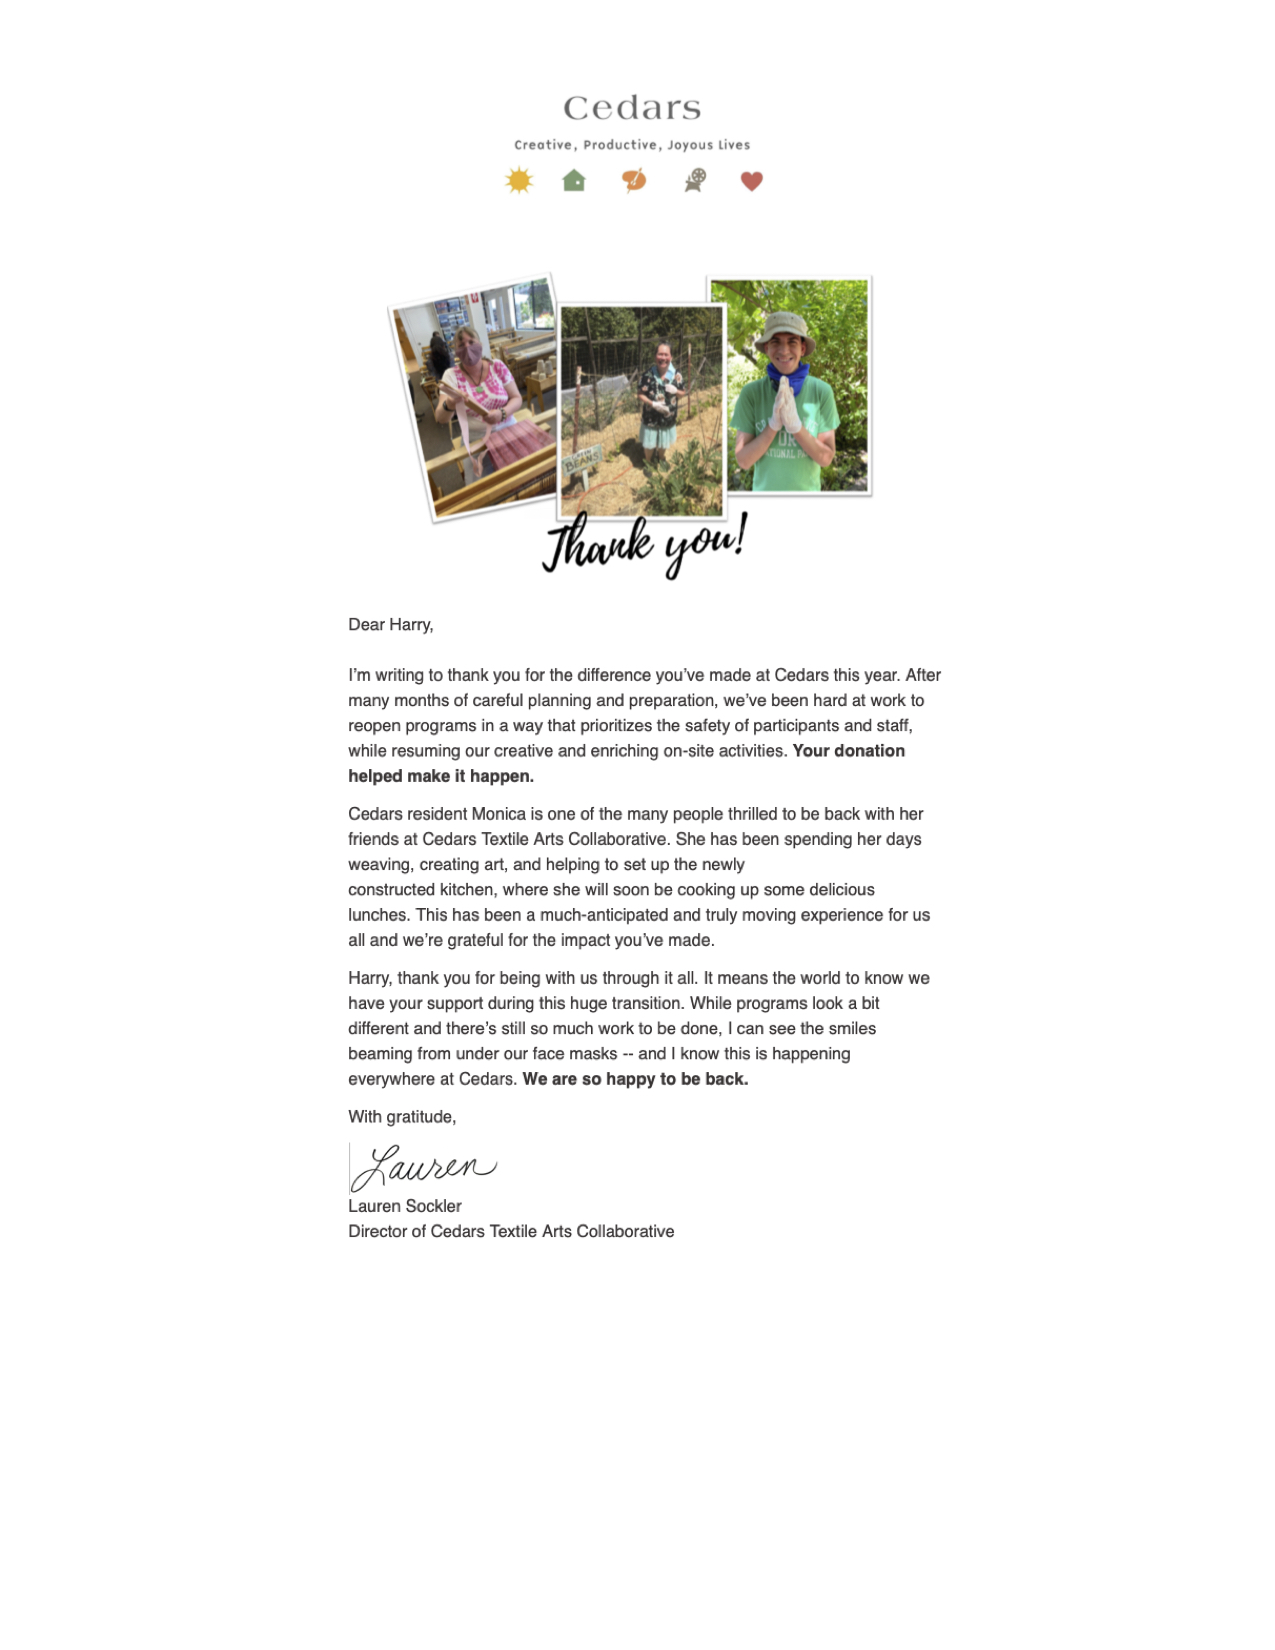 Thank you letter from Cedars